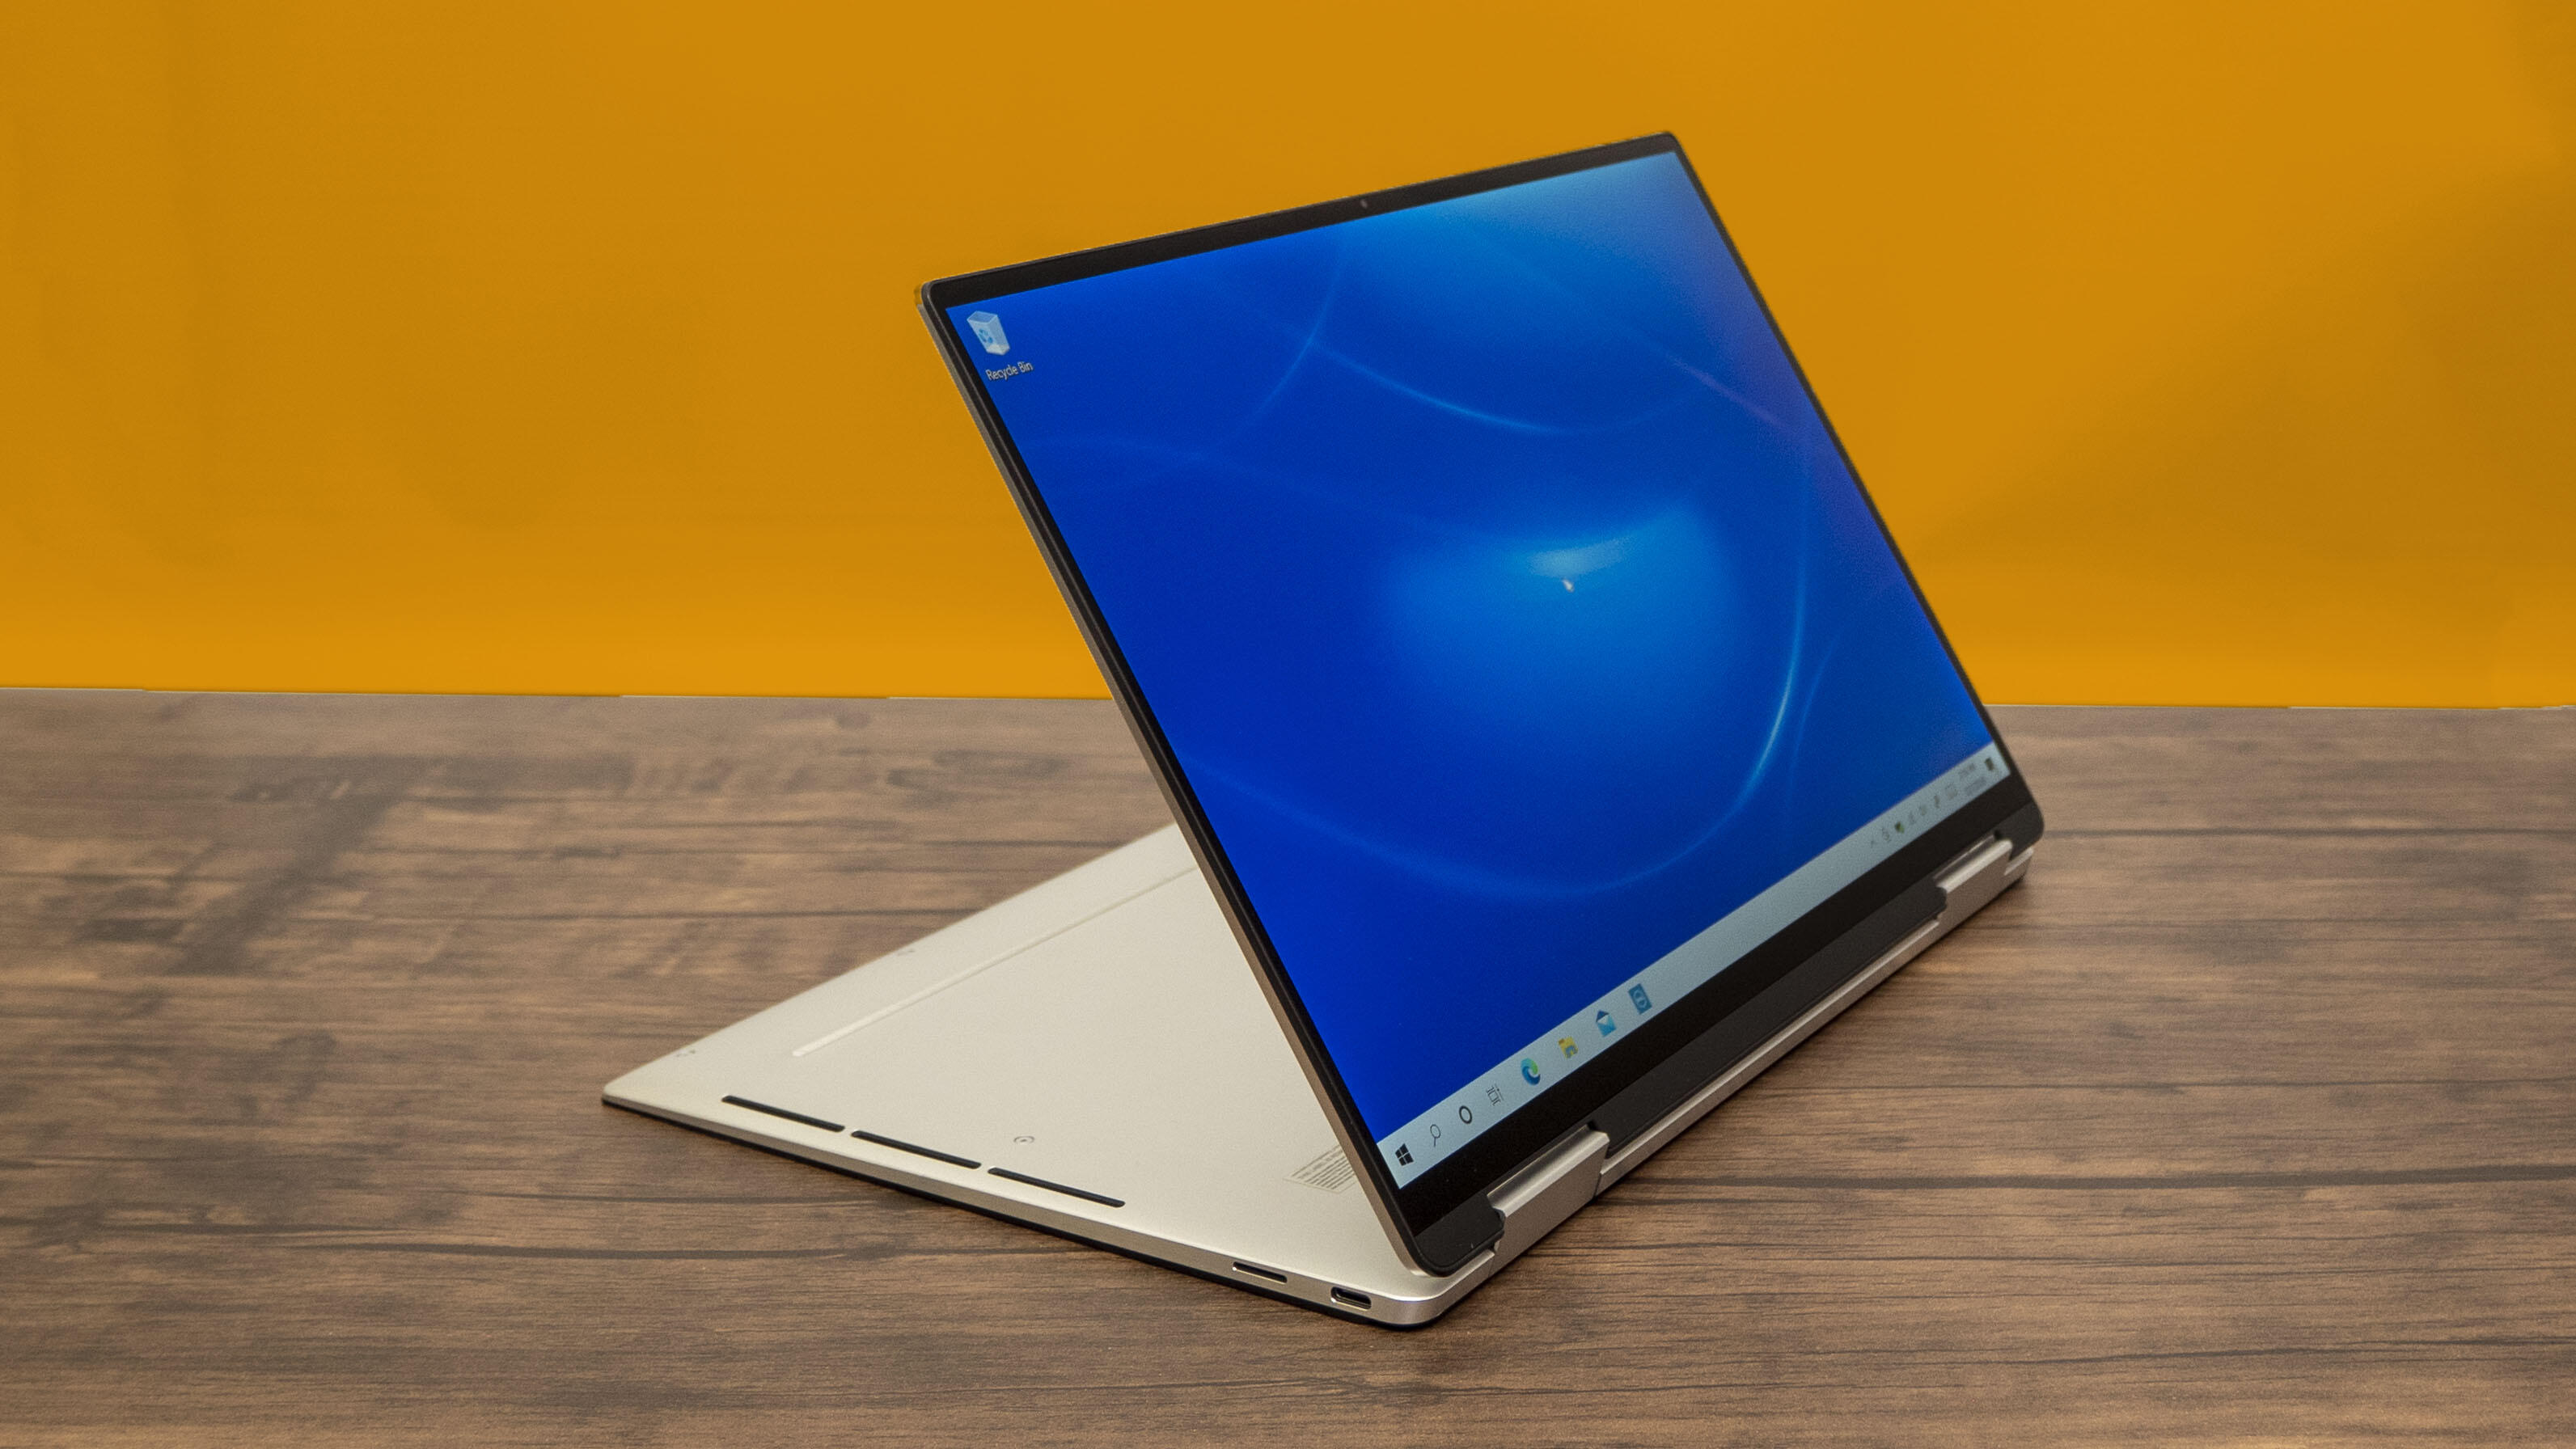 Best Prime Day Laptop Deals: Save $ 500 on the Dell XPS 13, $ 270 on a Gateway Laptop and More